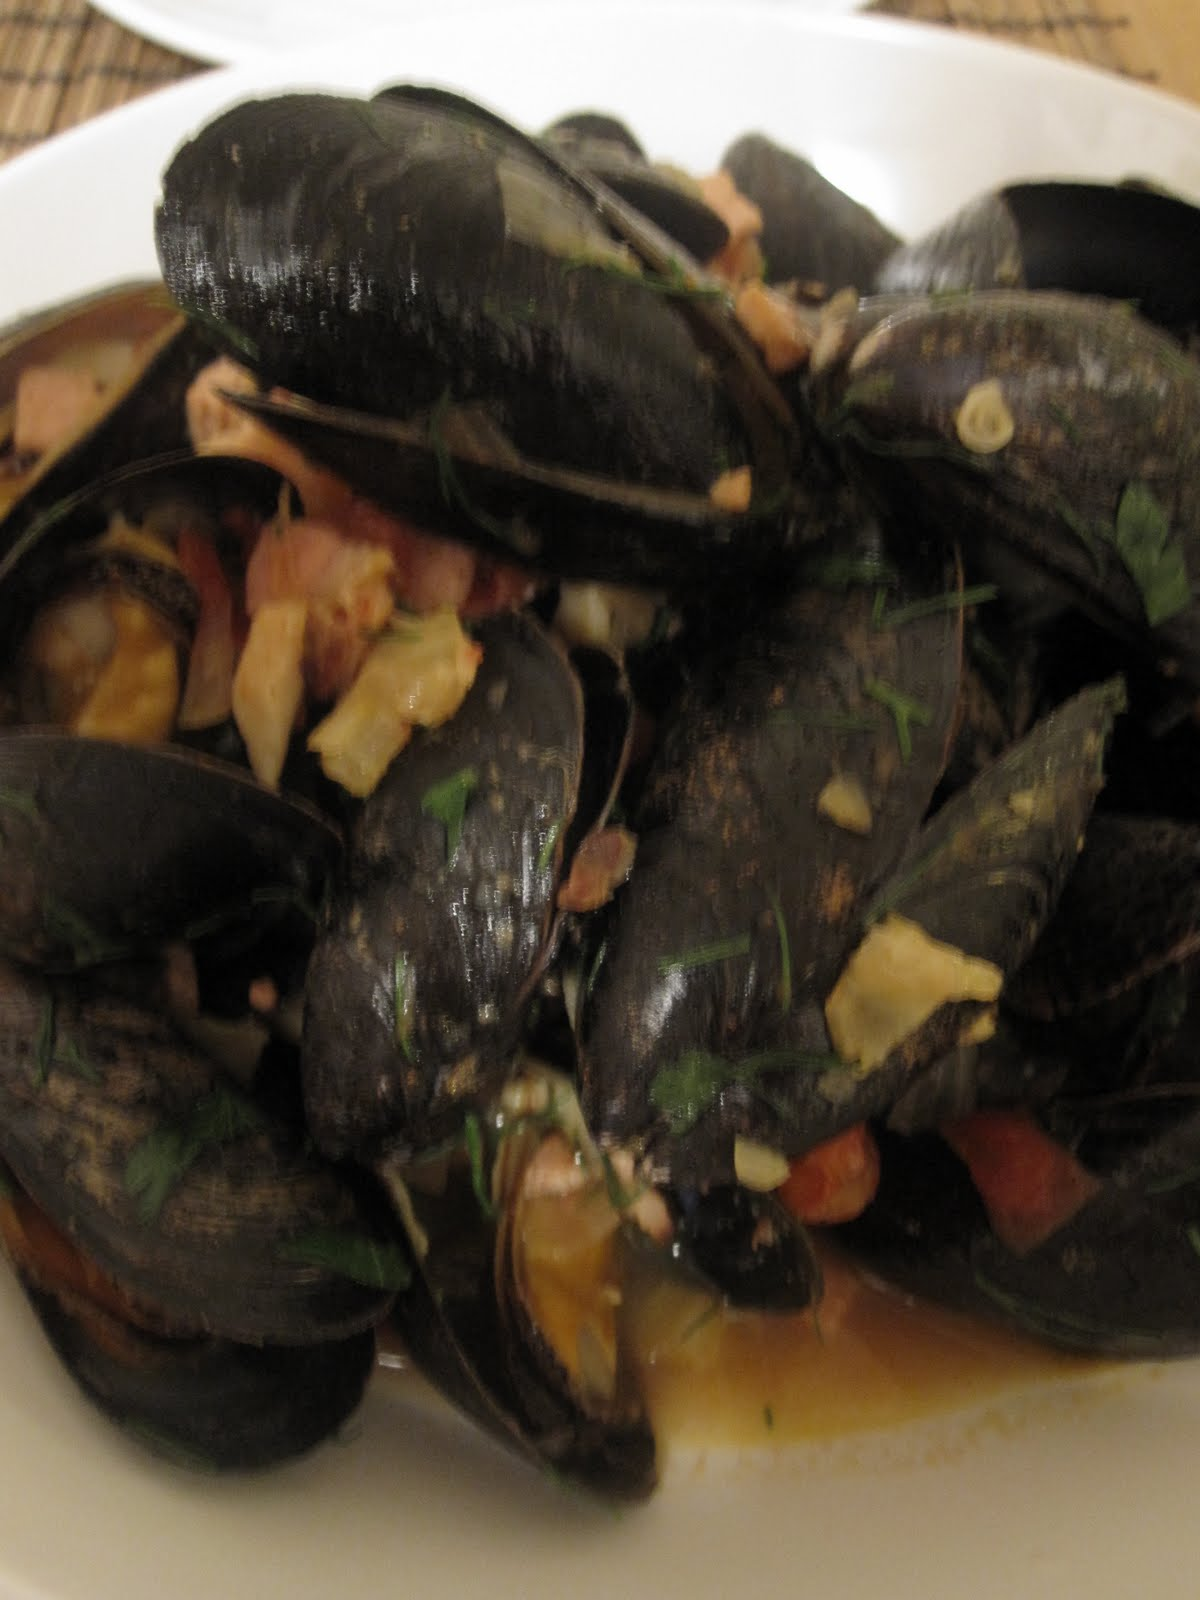 2: Mussels with bacon and a green bean salad